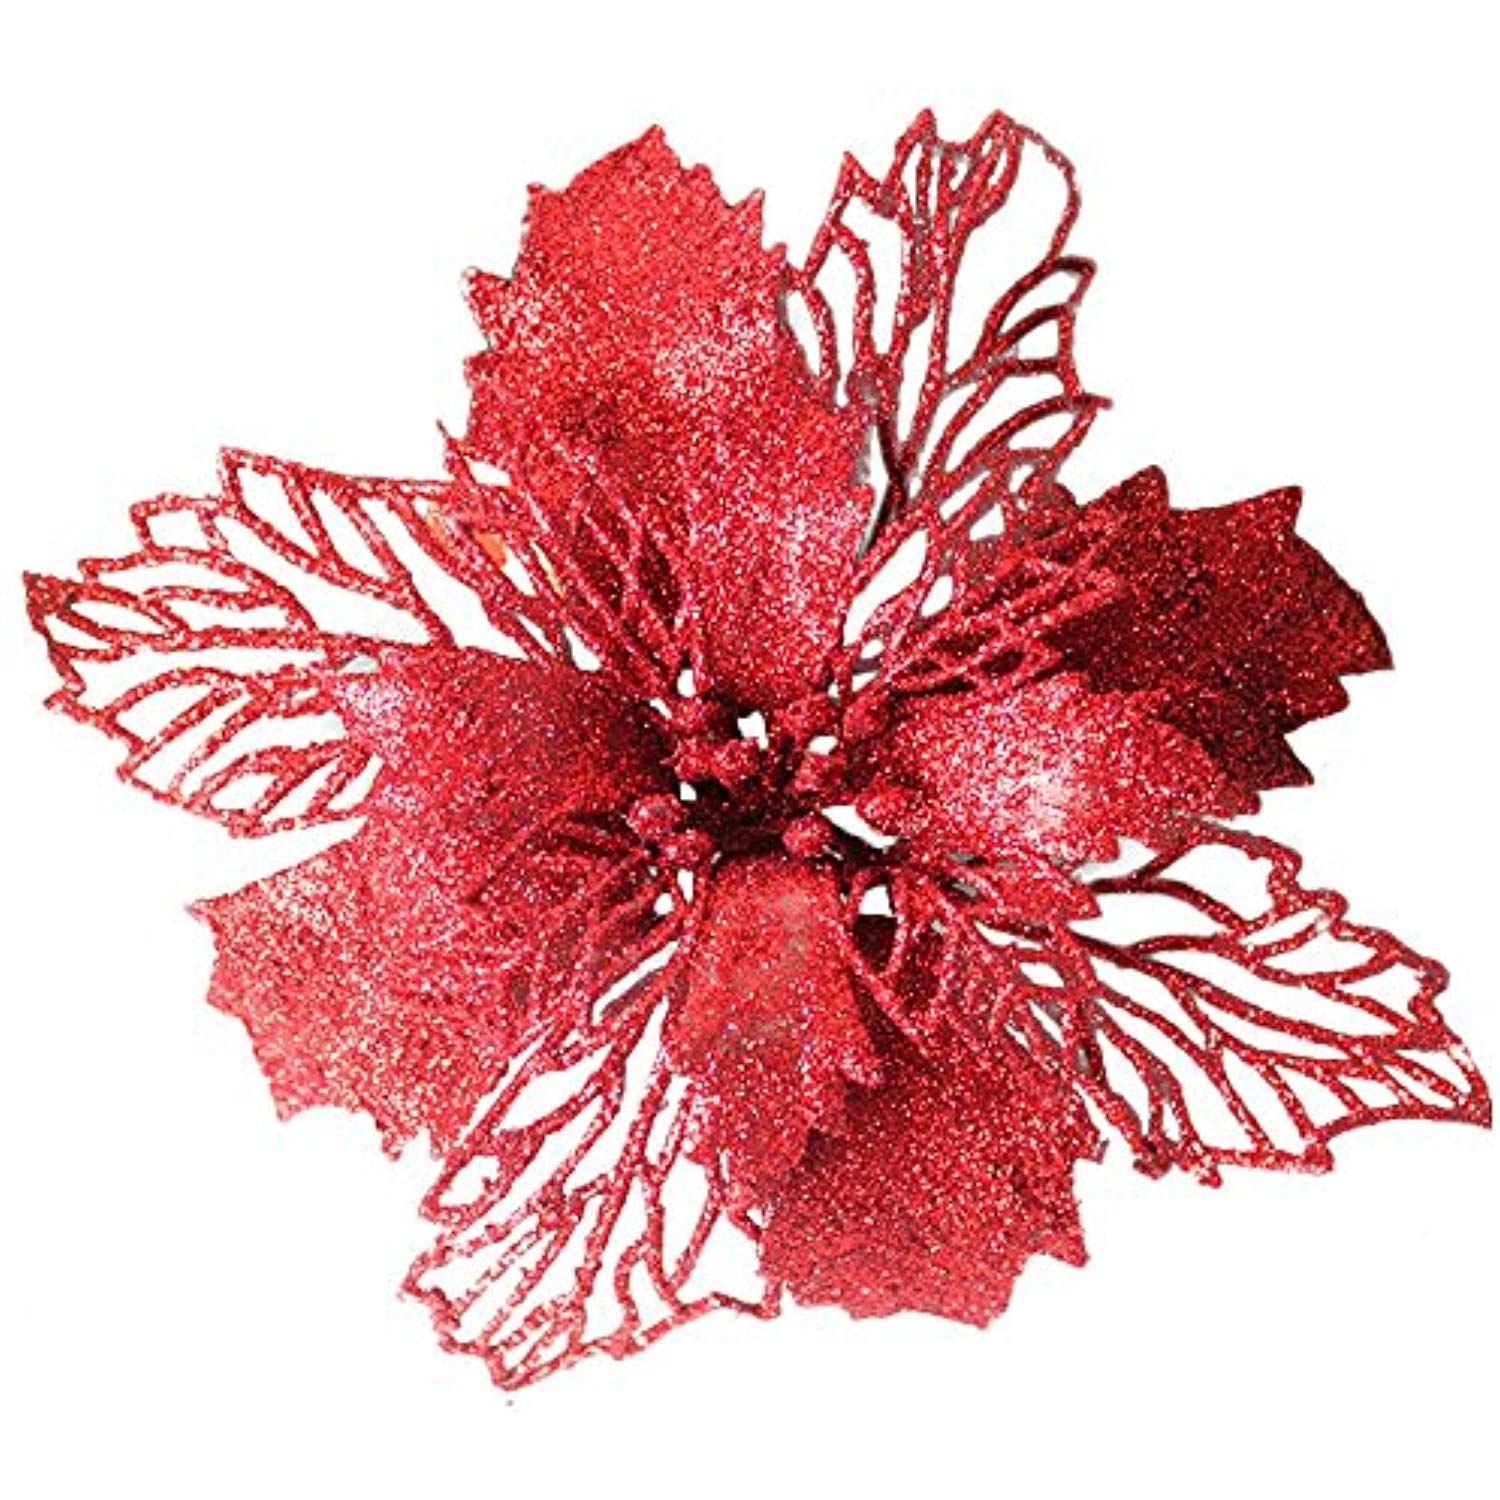 982ab903e6ec JPJ(TM) New â ¤Christmas Tree Ornamentâ ¤1pcs Home Hot Fashion Romantic  Rosette Hanging Charm Party Decoration Christmas Tree Ornament Flower (Red)  >>> Be ...